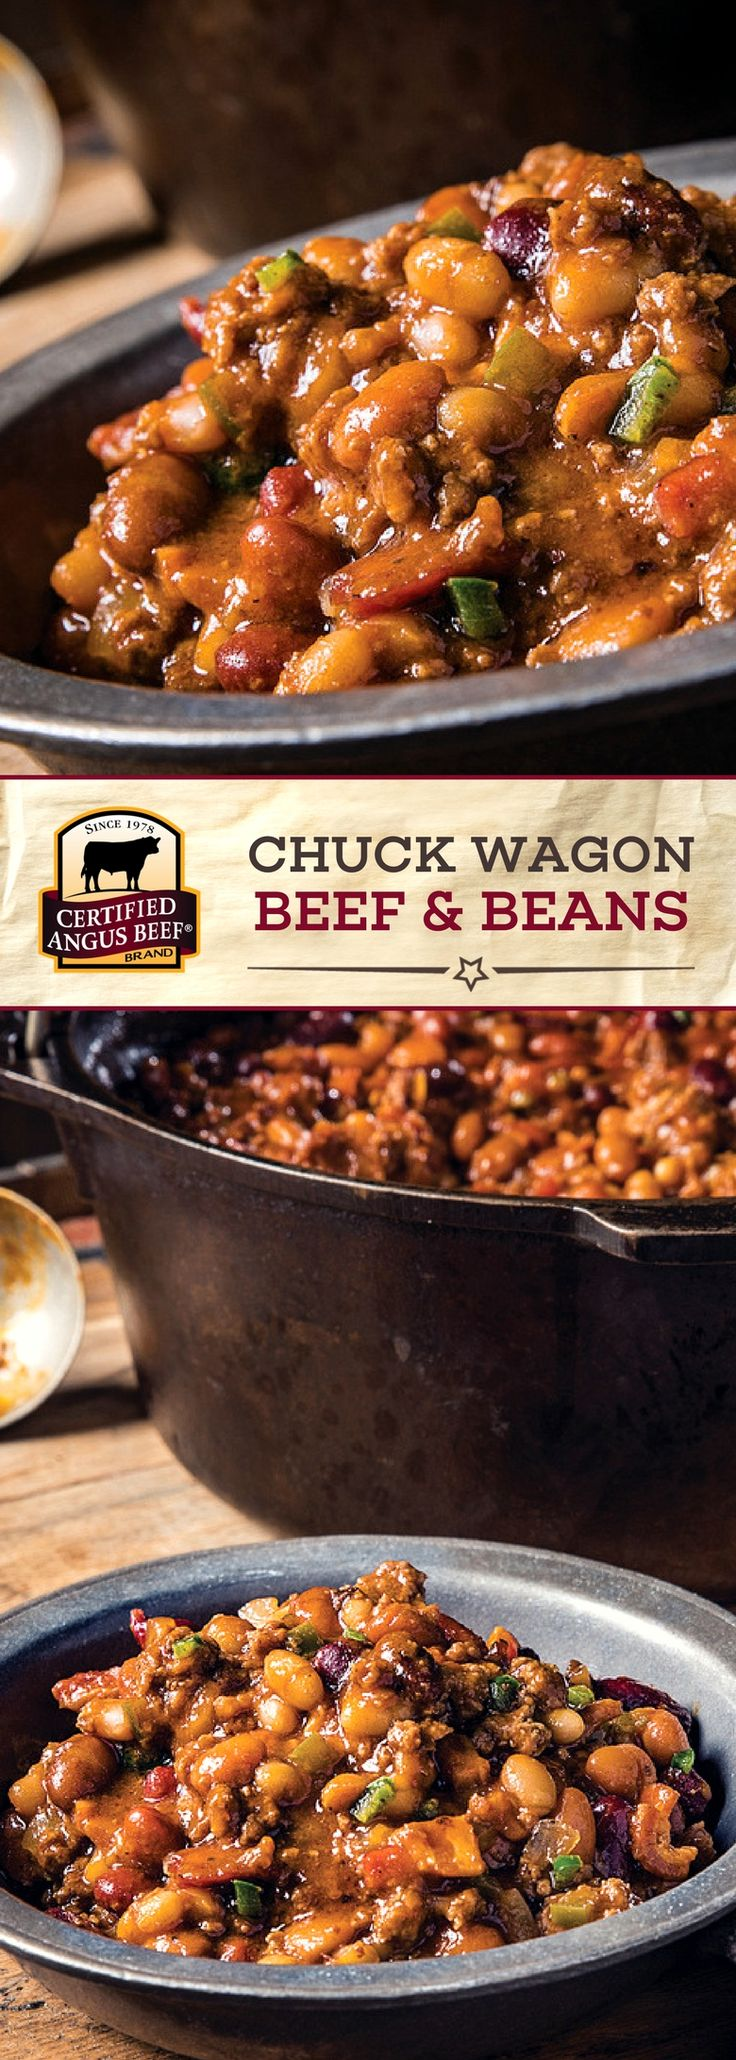 Certified Angus Beef®️ brand Chuck Wagon Beef and Beans